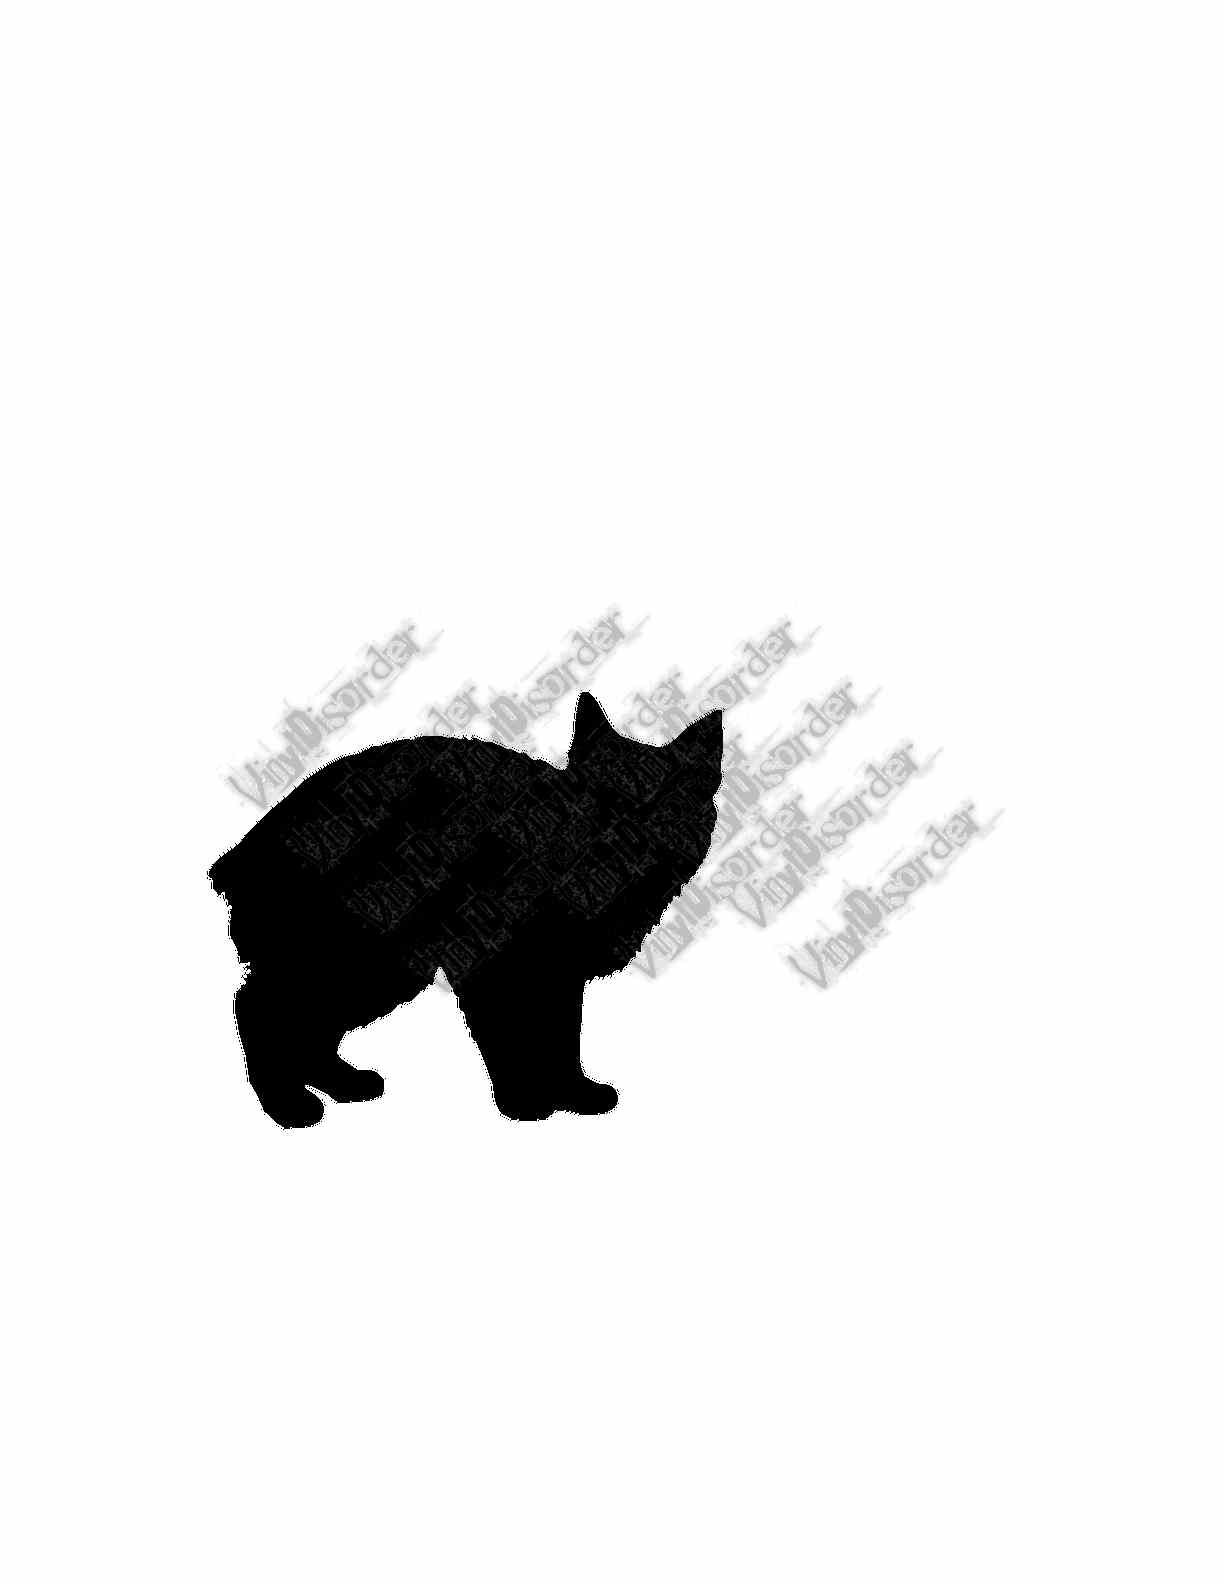 Chinese Crested Dog Wall Decal Custom Vinyl Decal Vinyls Cats - Custom vinyl wall decals cats